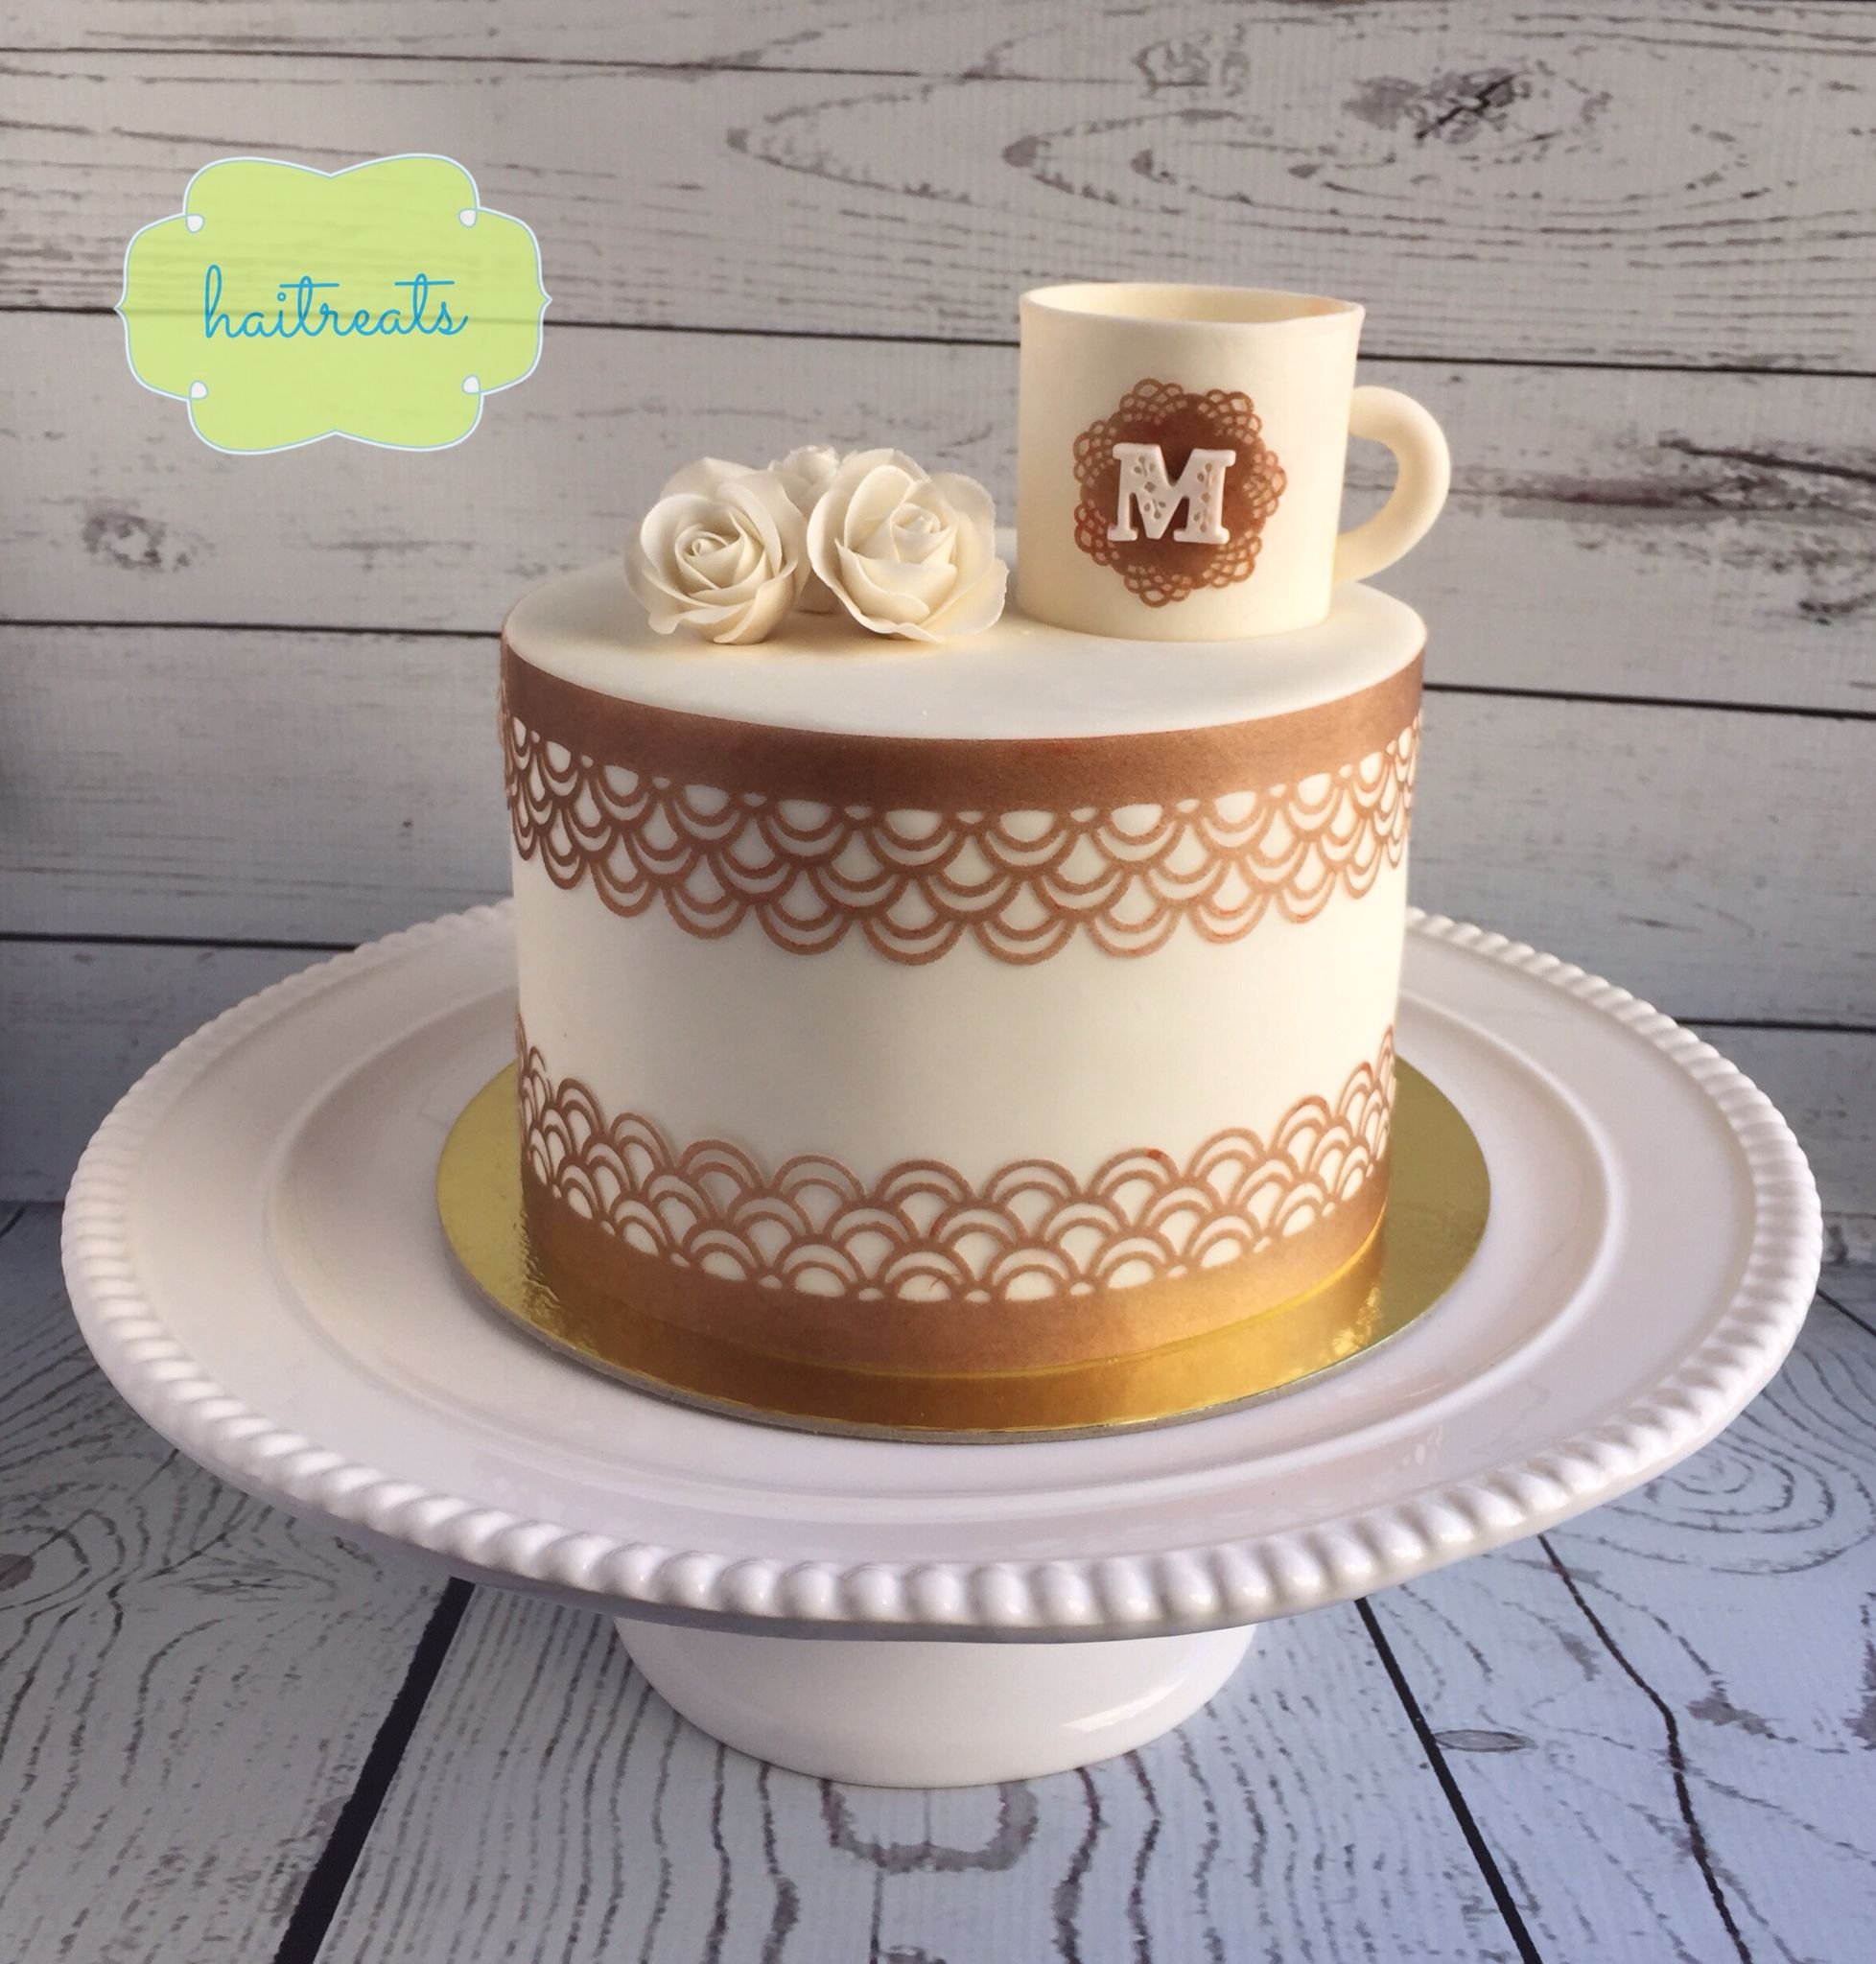 Coffee Cake Birthday Cakes By Haitreats Pinterest Coffee Cake